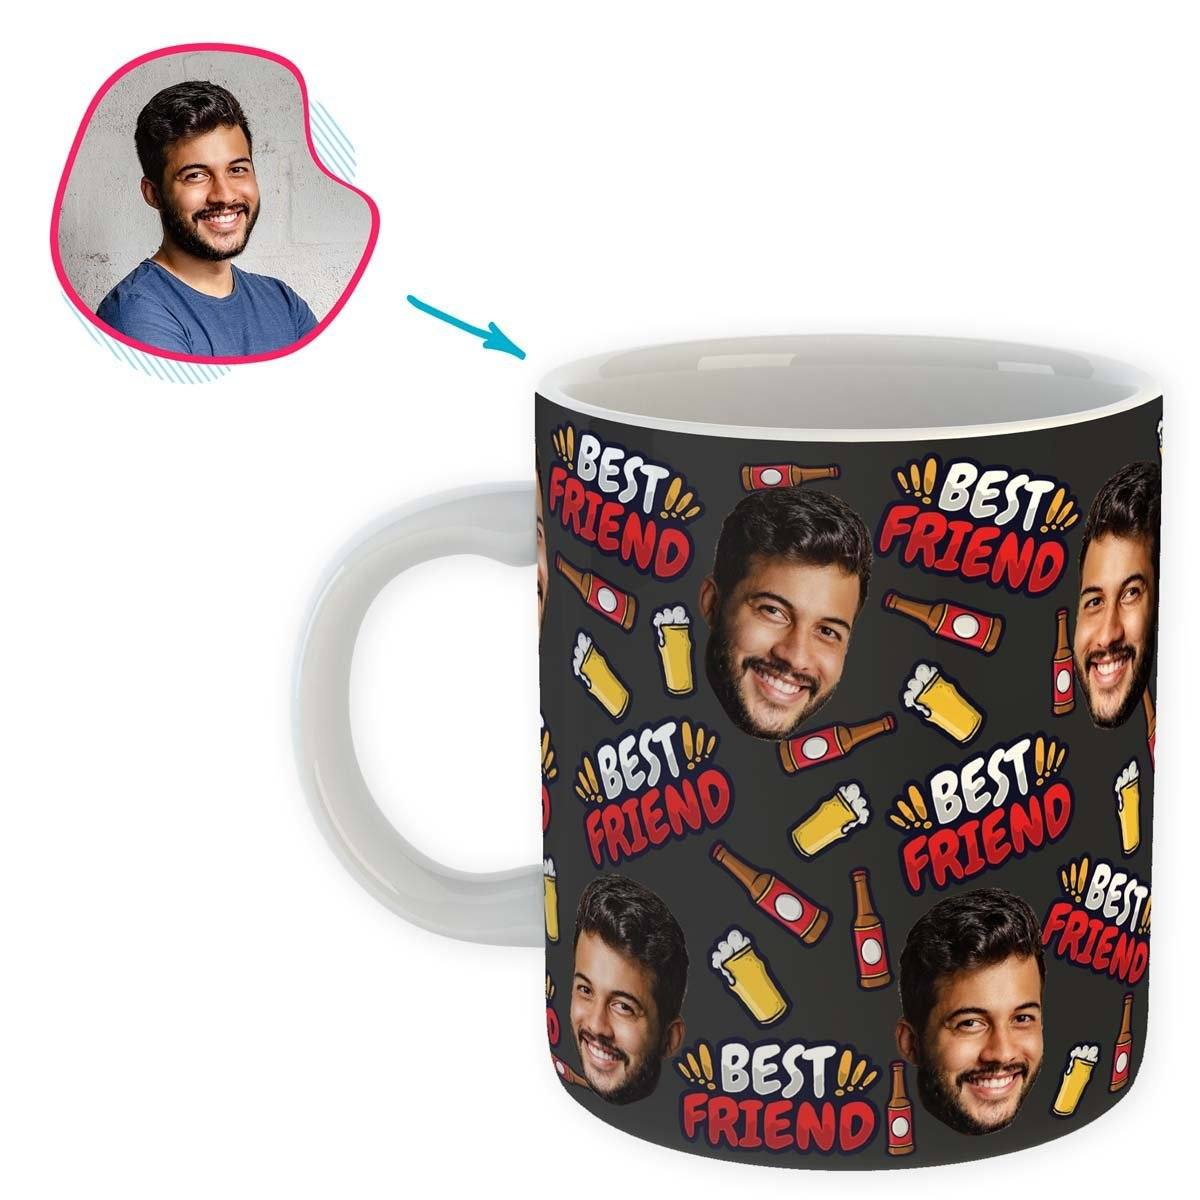 dark BFF for Him mug personalized with photo of face printed on it